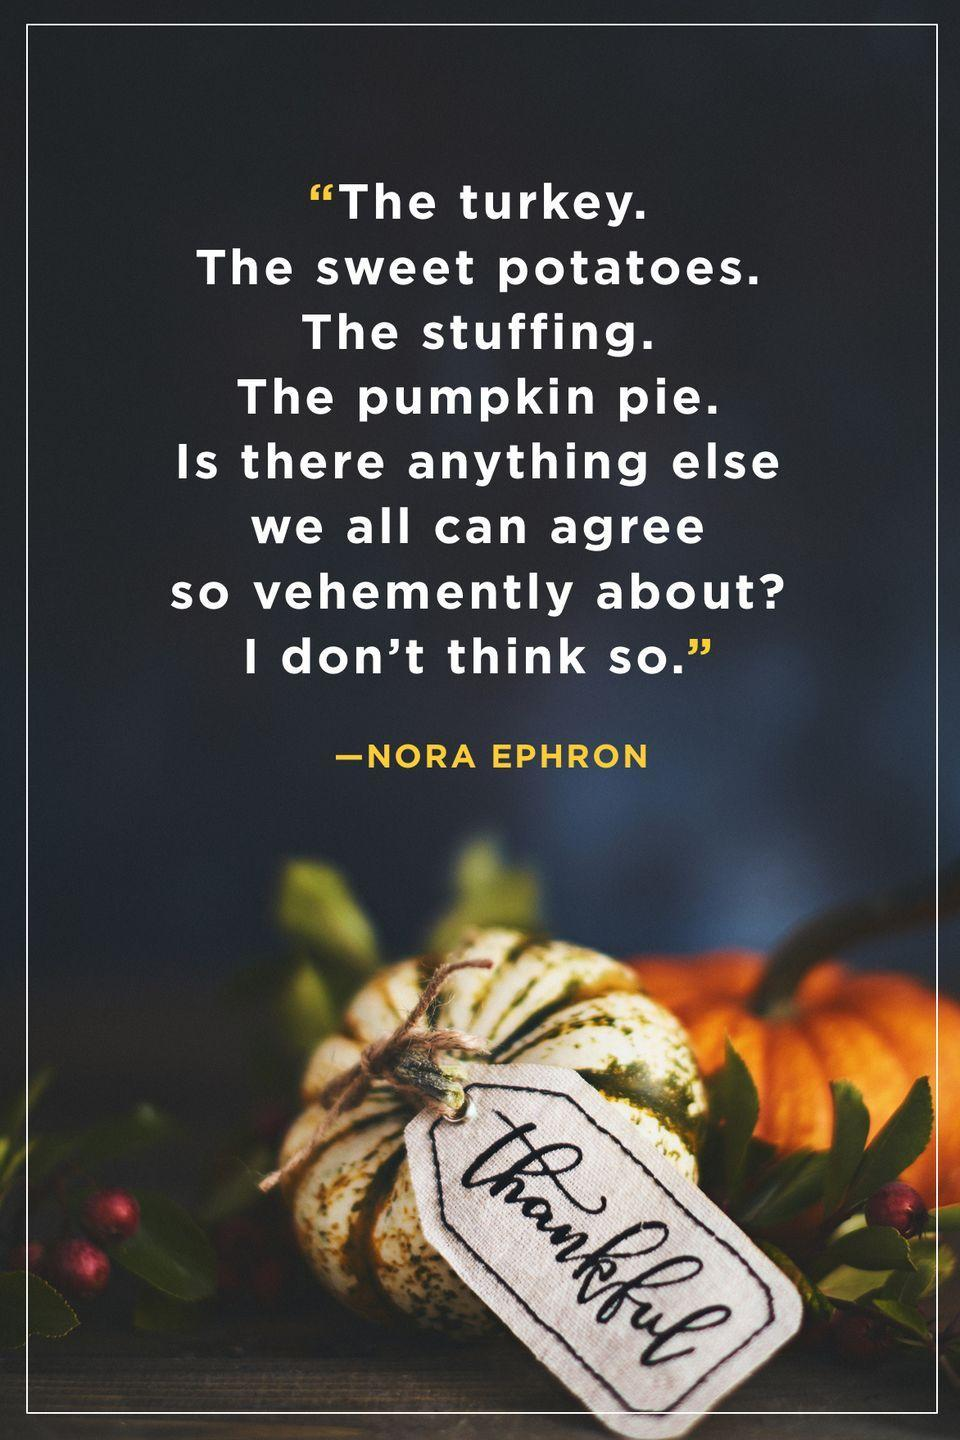 """<p>""""The turkey. The sweet potatoes. The stuffing. The pumpkin pie. Is there anything else we all can agree so vehemently about? I don't think so.""""</p>"""